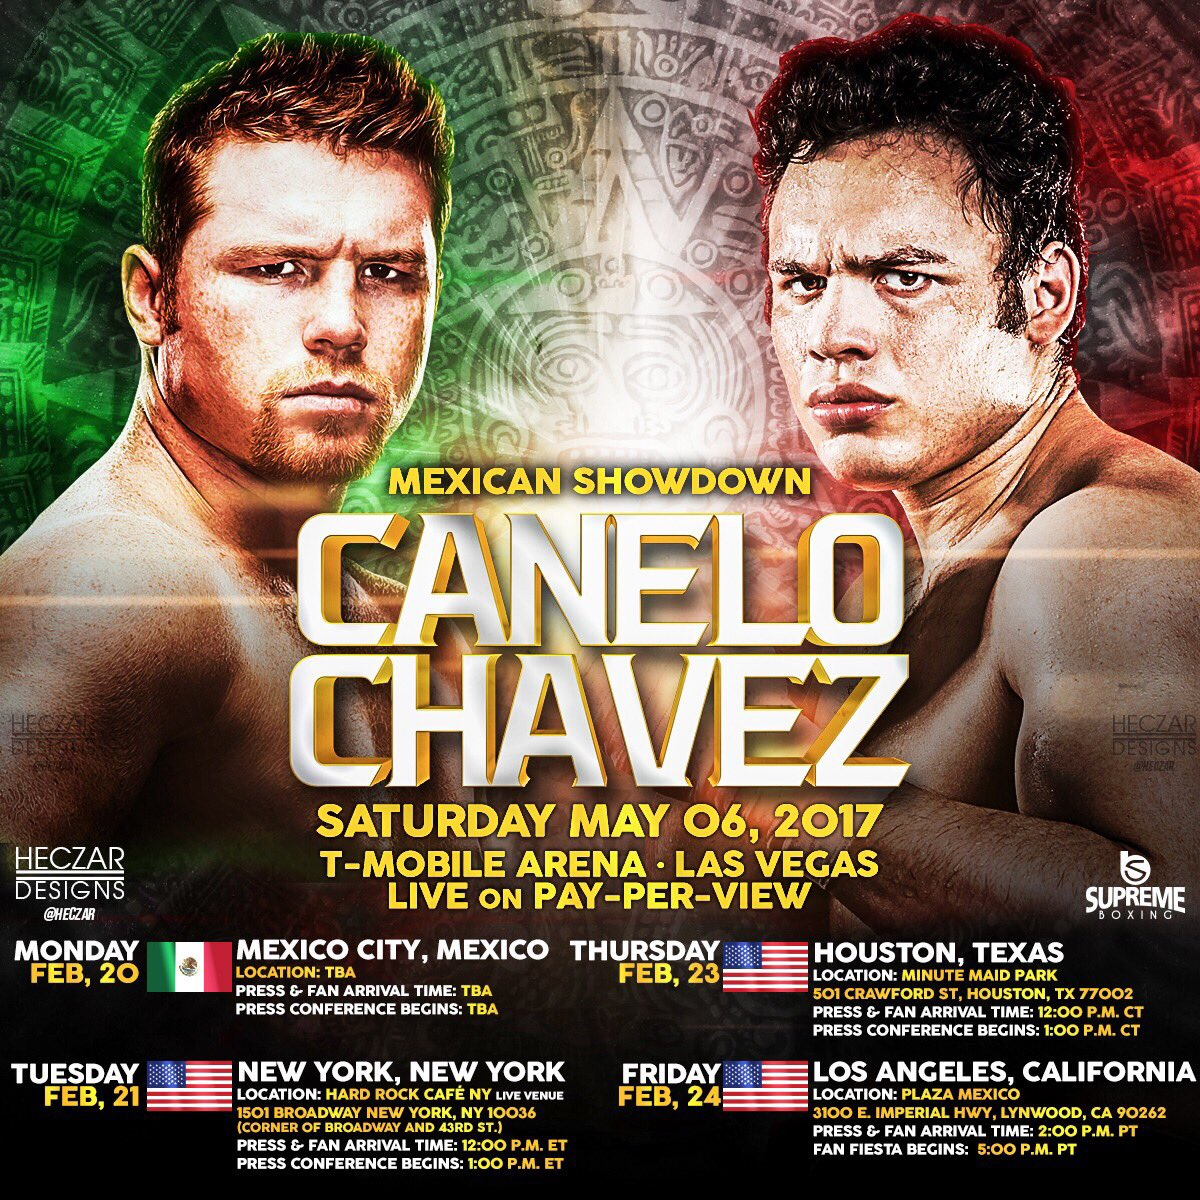 "Julio Cesar Chavez Jr., Saul ""Canelo"" Alvarez - As the clock begins to tick towards the highly anticipated Cinco de Mayo Weekend Canelo-Chavez, Jr. event on May 6, HBO Pay-Per-View, fighters including Former IBF Middleweight Champion David Lemieux (37-3, 33 KOs), Marco ""Dorado"" Reyes (35-4, 26 KOs), Former WBC Silver Super Lightweight Champion Lucas ""La Maquina"" Matthysse (37-4, 34 KOs), Emmanuel ""Tranzformer"" Taylor (20-4, 14 KOs), NABF Featherweight Champion Joseph ""JoJo"" Diaz, Jr.  (23-0, 13 KOs), and IBA Featherweight Champion Manuel ""Tino"" Avila  (22-0, 8 KOs) hosted an international media conference call ahead of their fights presented live on HBO Pay-Per-View® and straight from T-Mobile Arena in Las Vegas, NV."